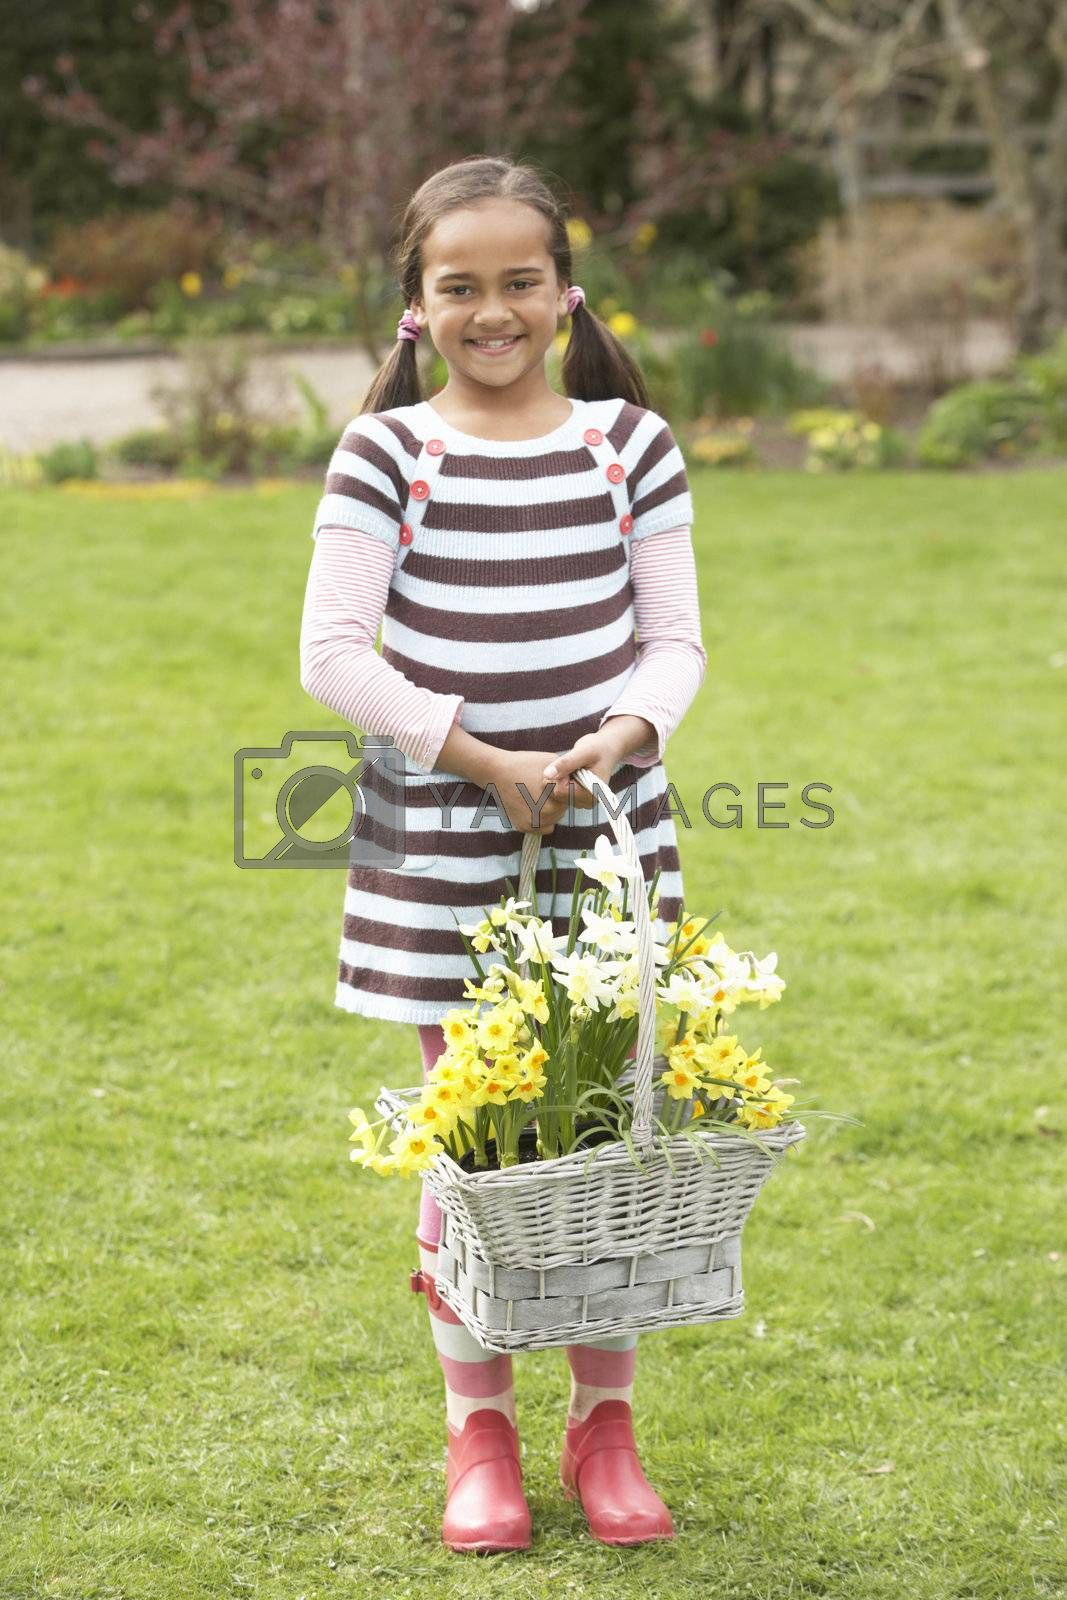 Royalty free image of Girl Holding Basket Of Daffodils In Garden by omg_images